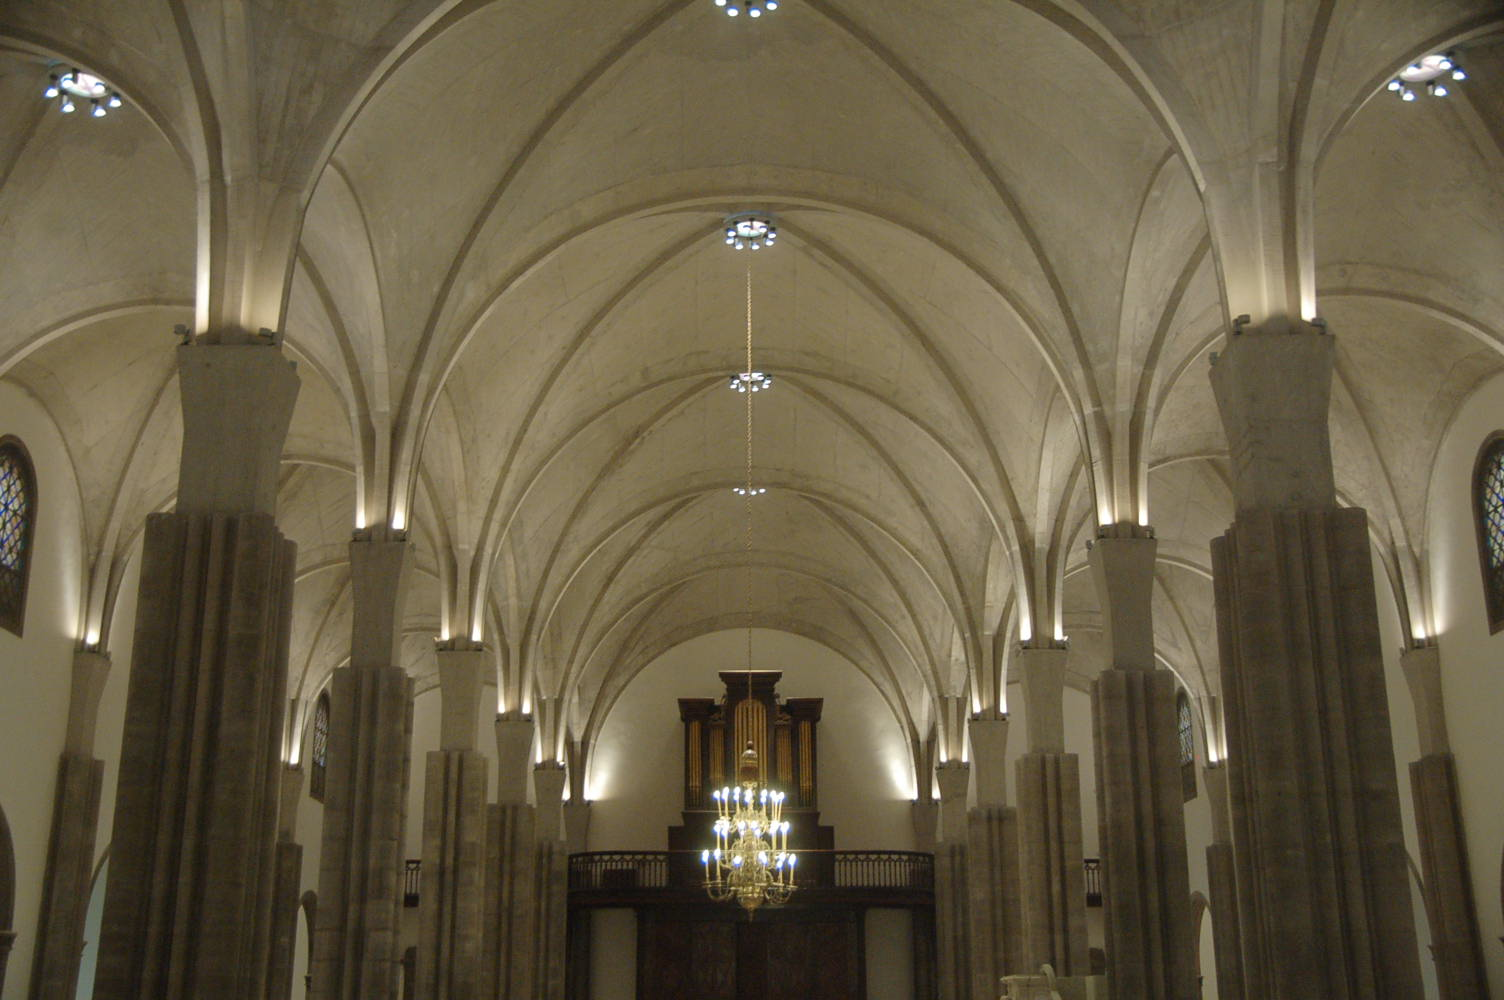 Interior of the Cathedral after project completion